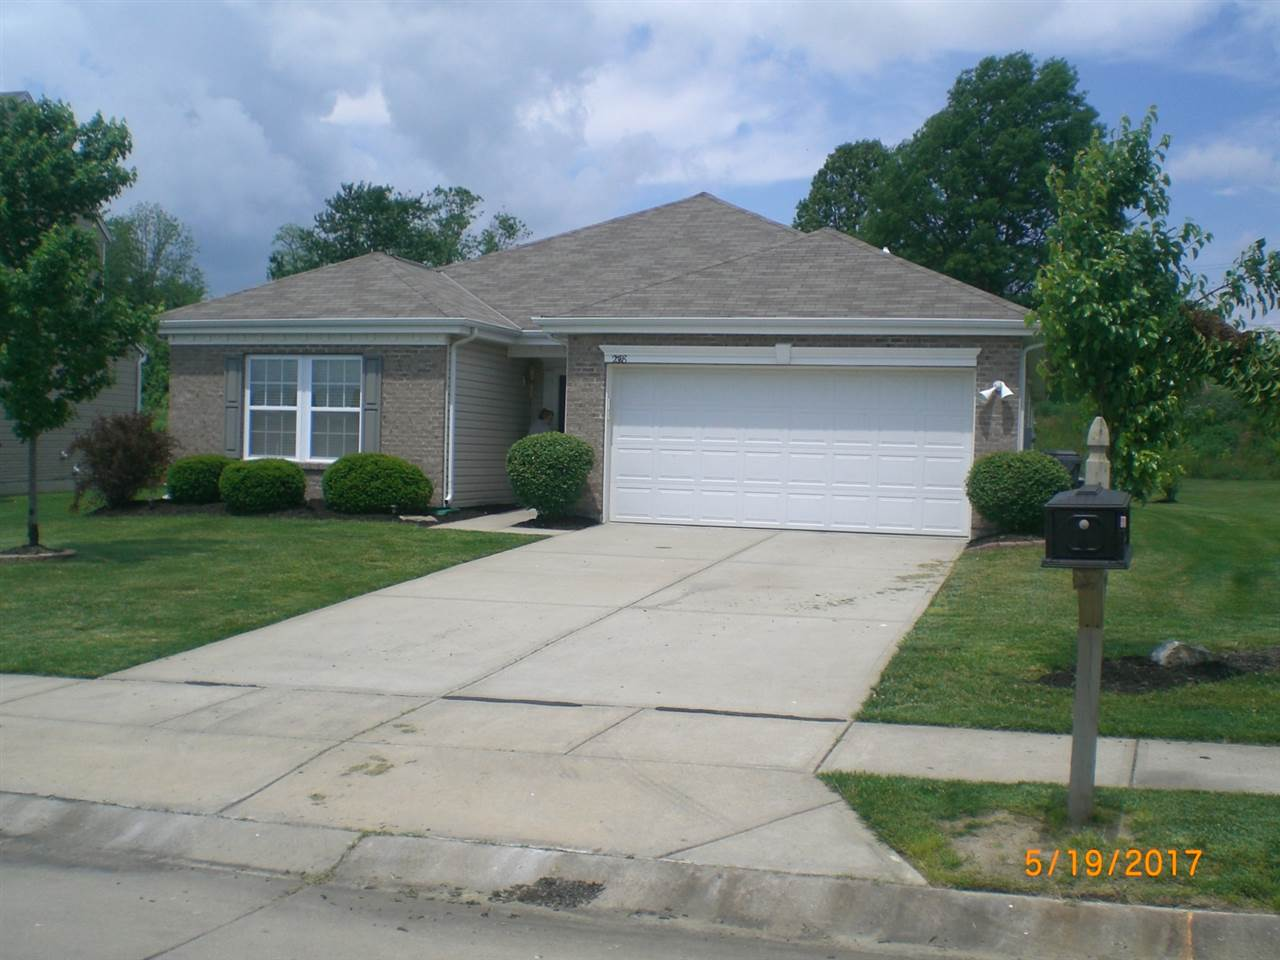 Photo 1 for 278 Veneto Dr Walton, KY 41094